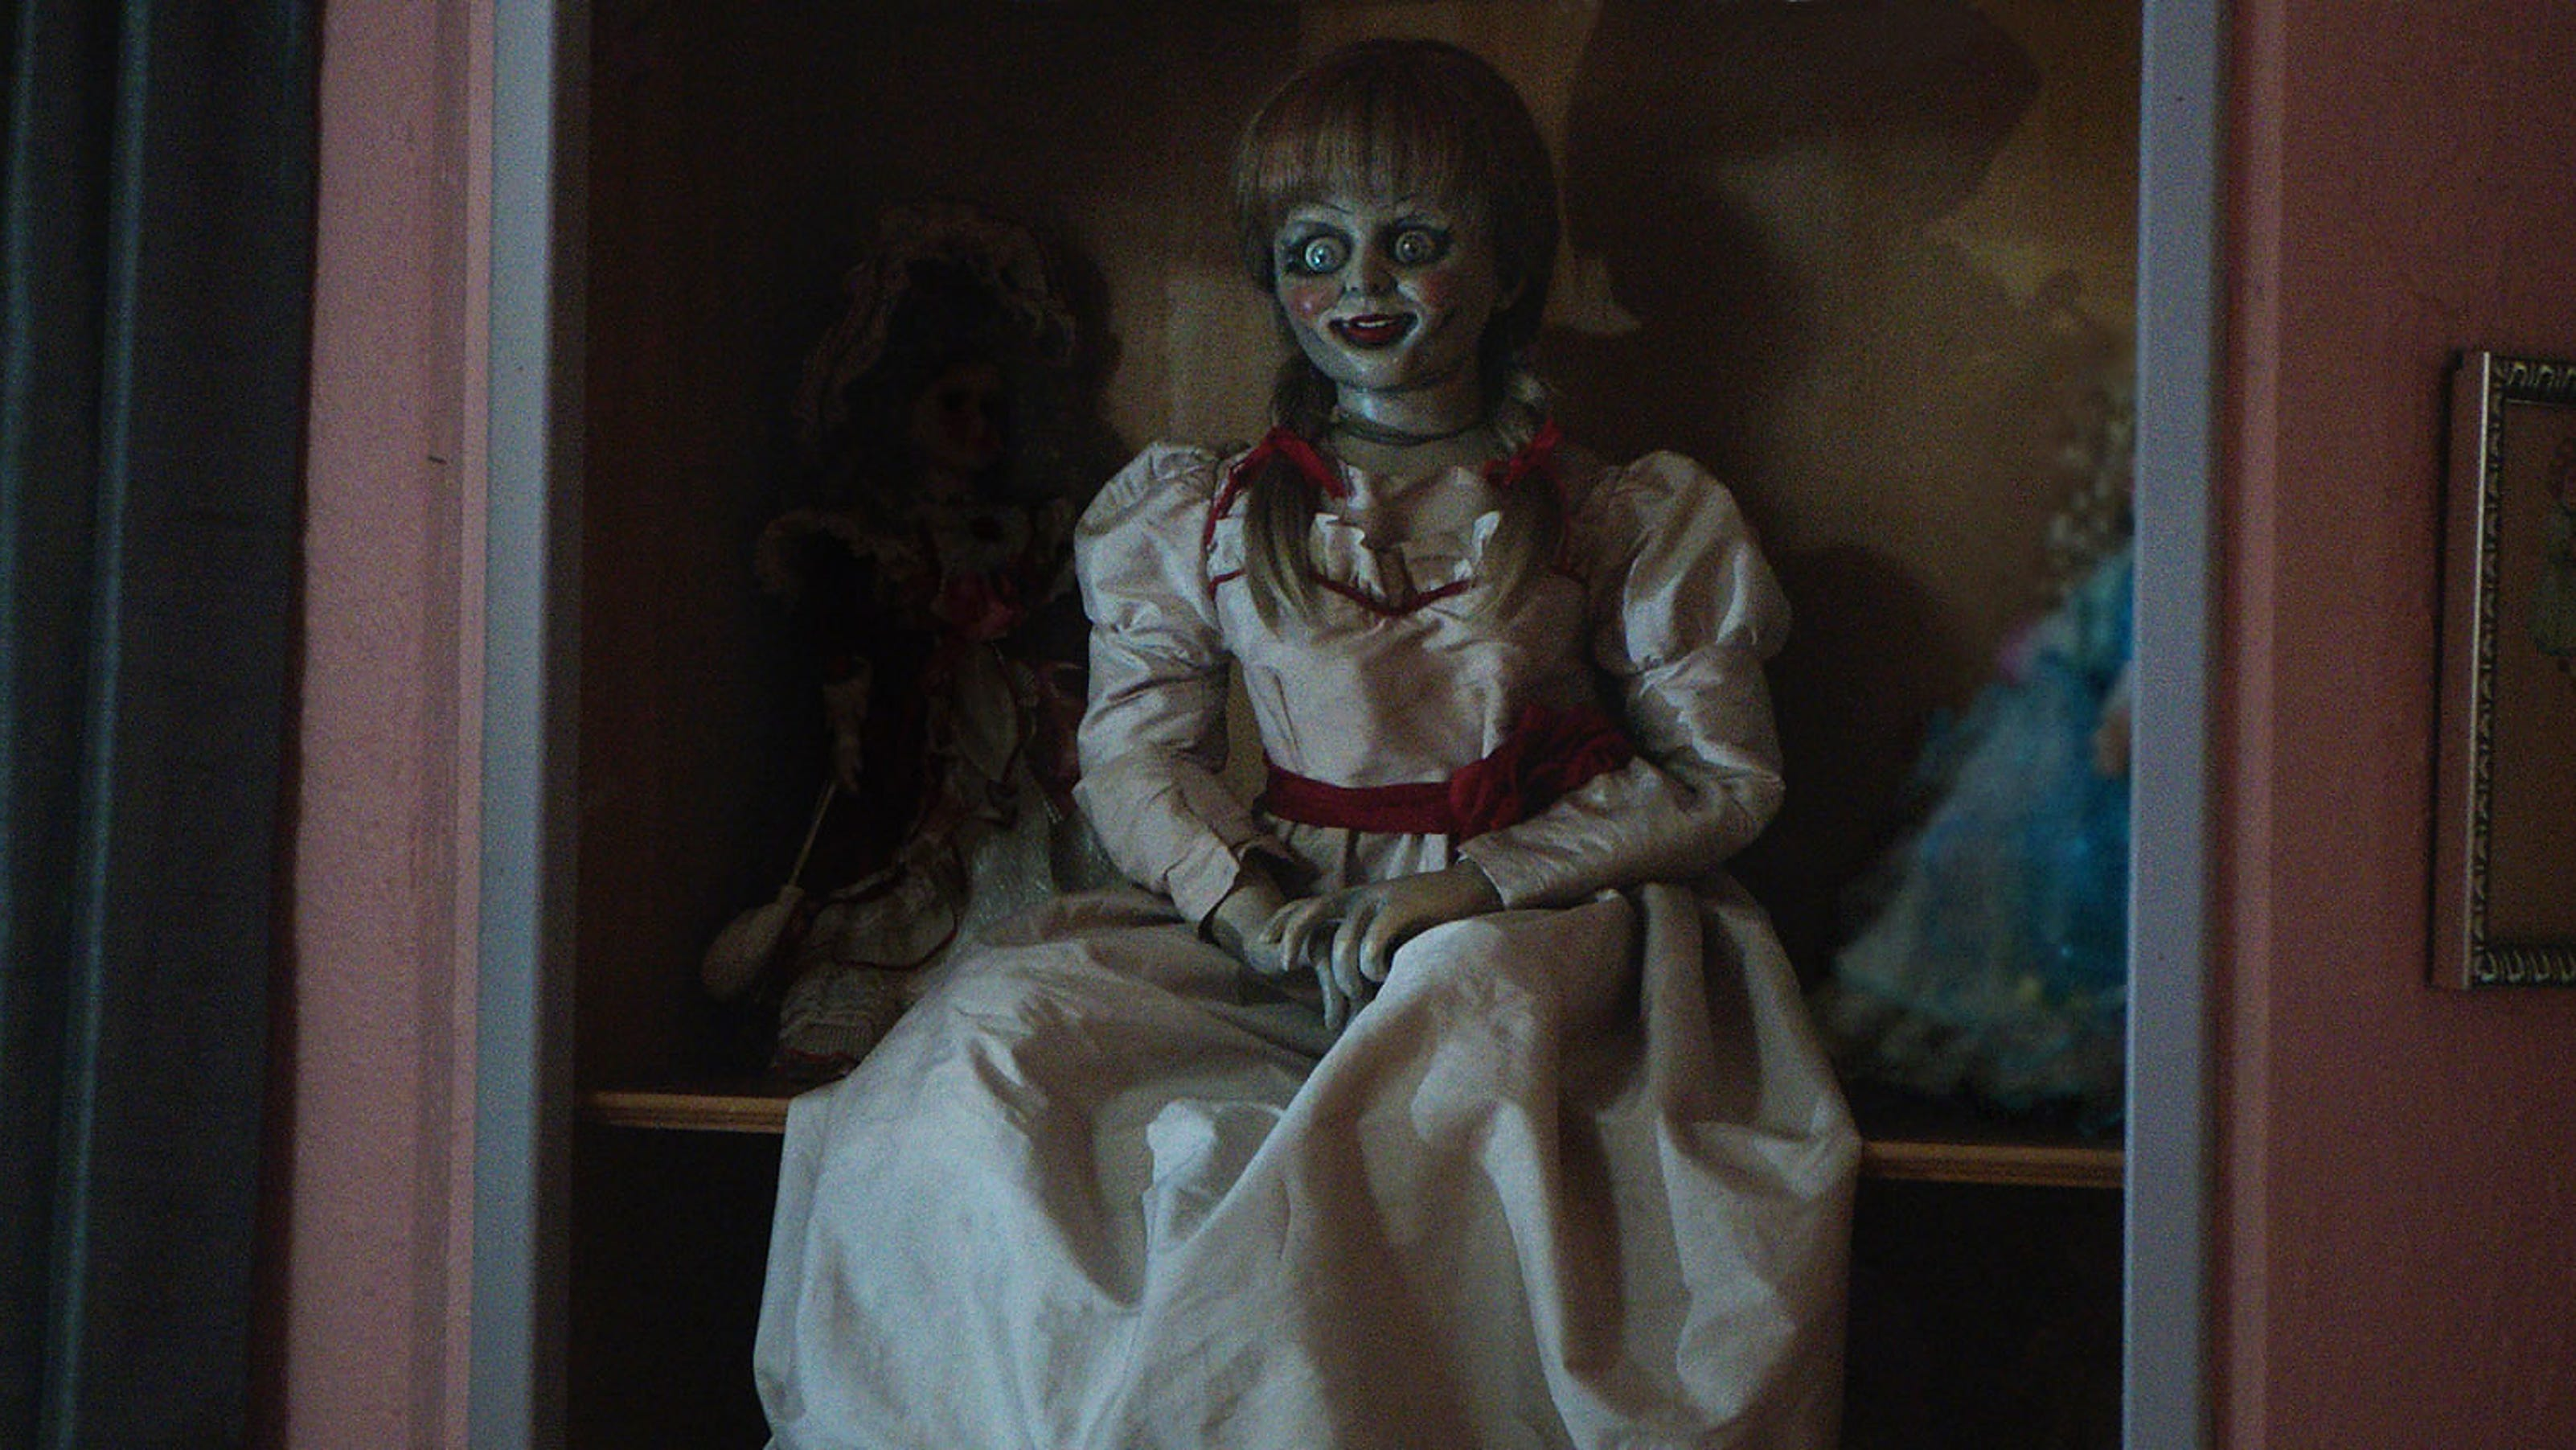 39 annabelle 39 merely toys with genuine horror